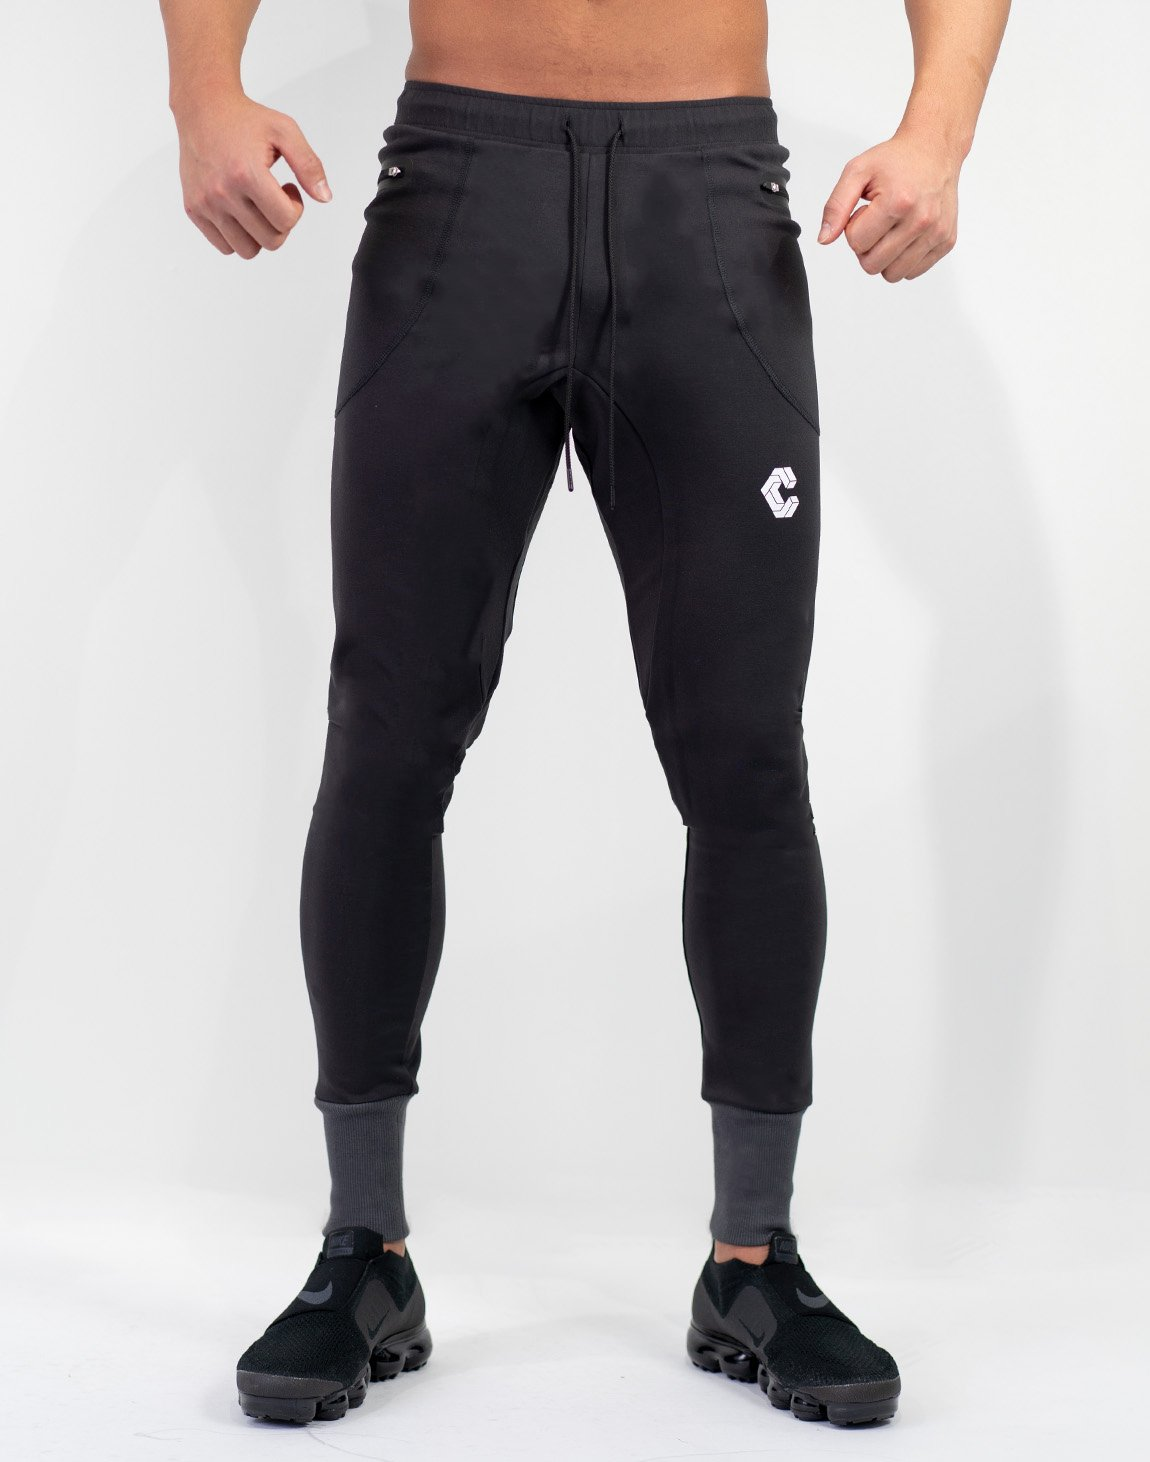 <img class='new_mark_img1' src='https://img.shop-pro.jp/img/new/icons1.gif' style='border:none;display:inline;margin:0px;padding:0px;width:auto;' />Mode Calf Logo jogger Pants Gray